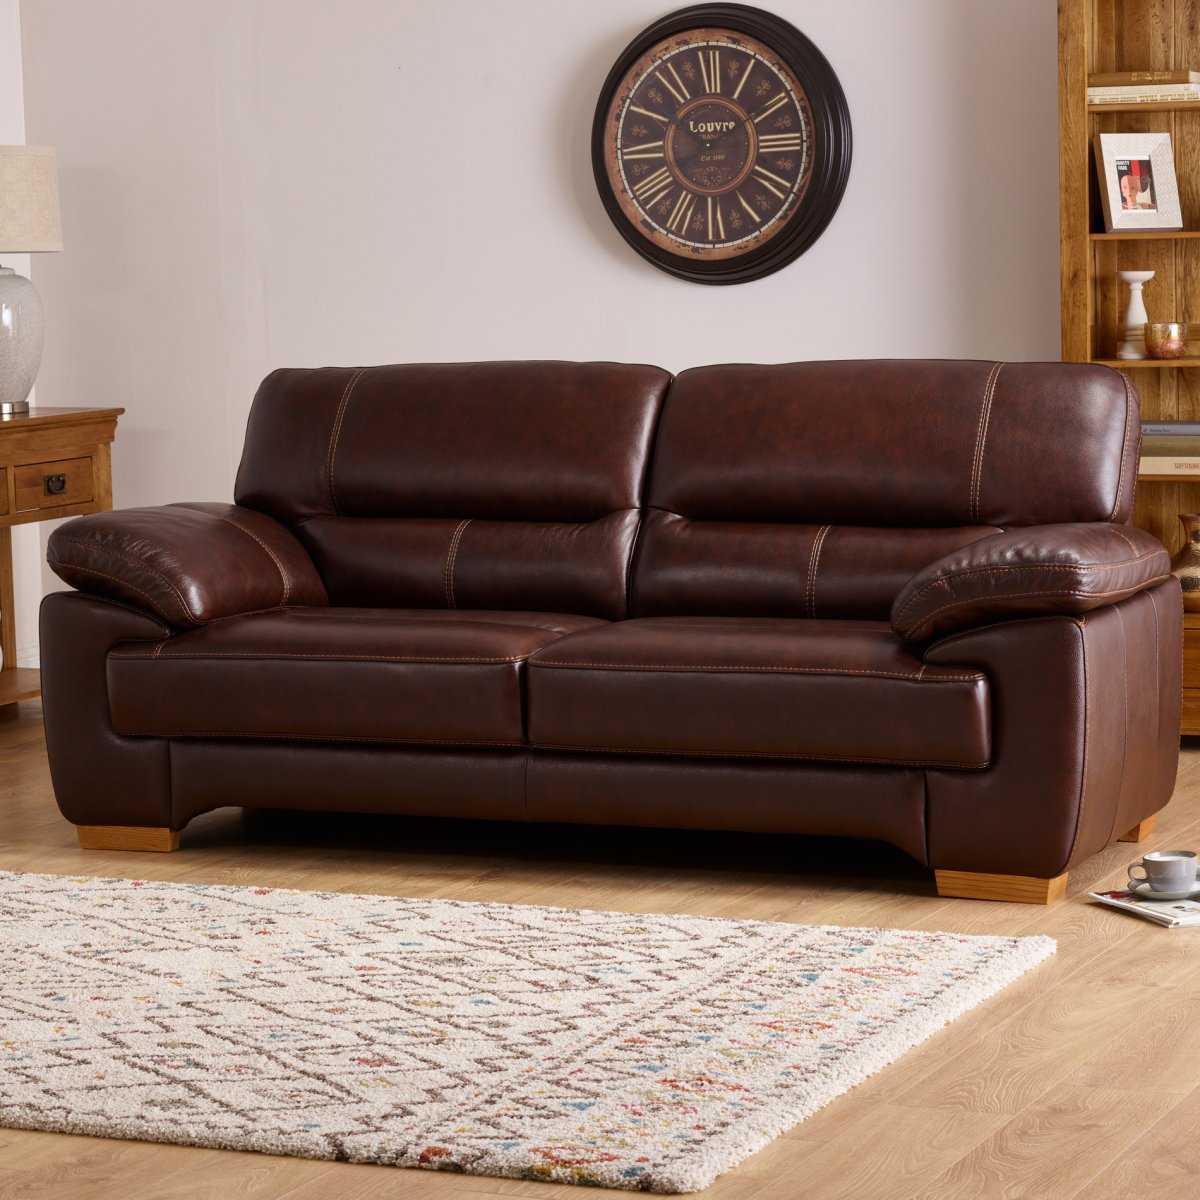 Clayton 2 Seater Sofa In Light Brown Leather Oak